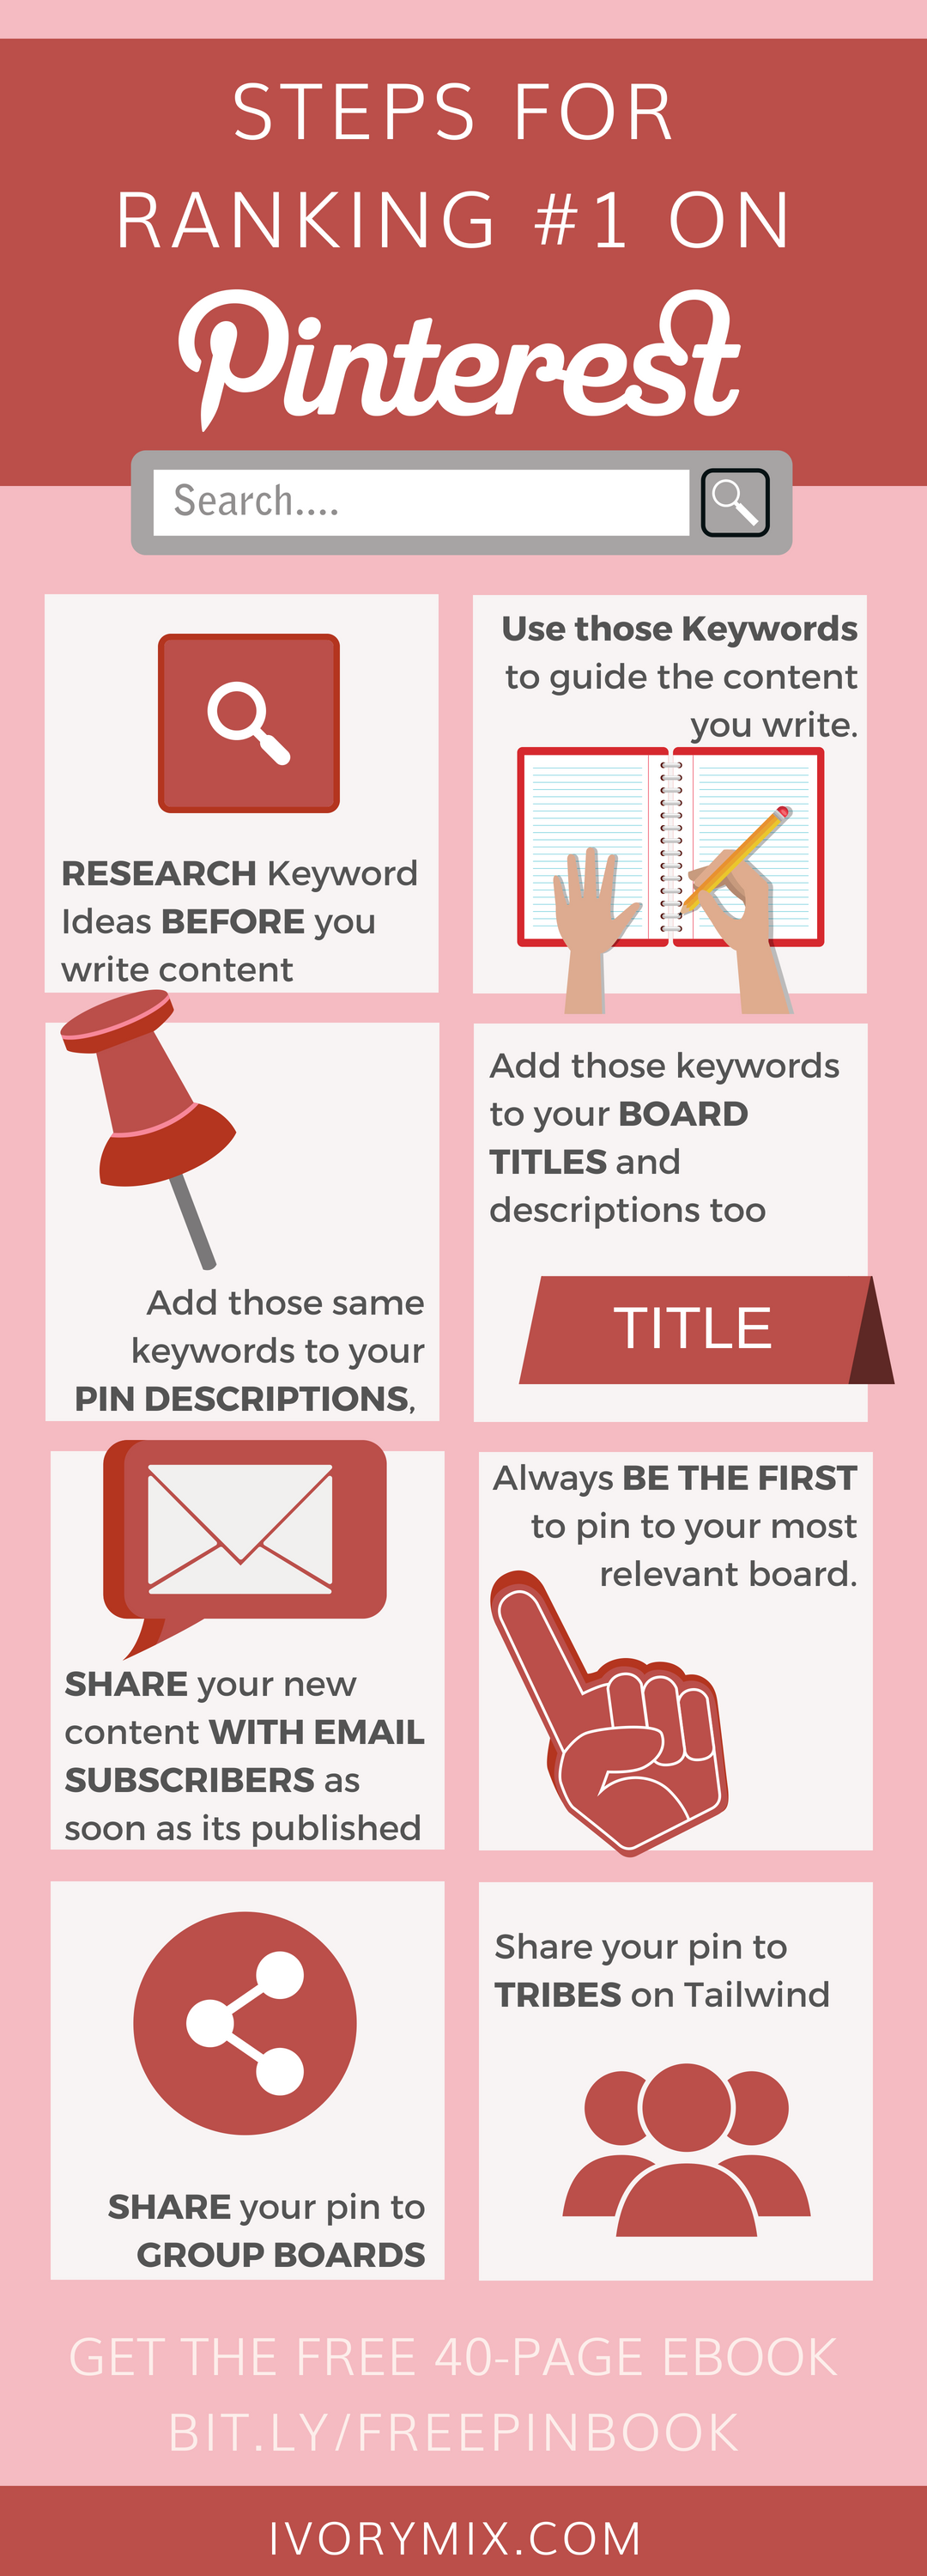 exactly what to do to rank first #1 on pinterest